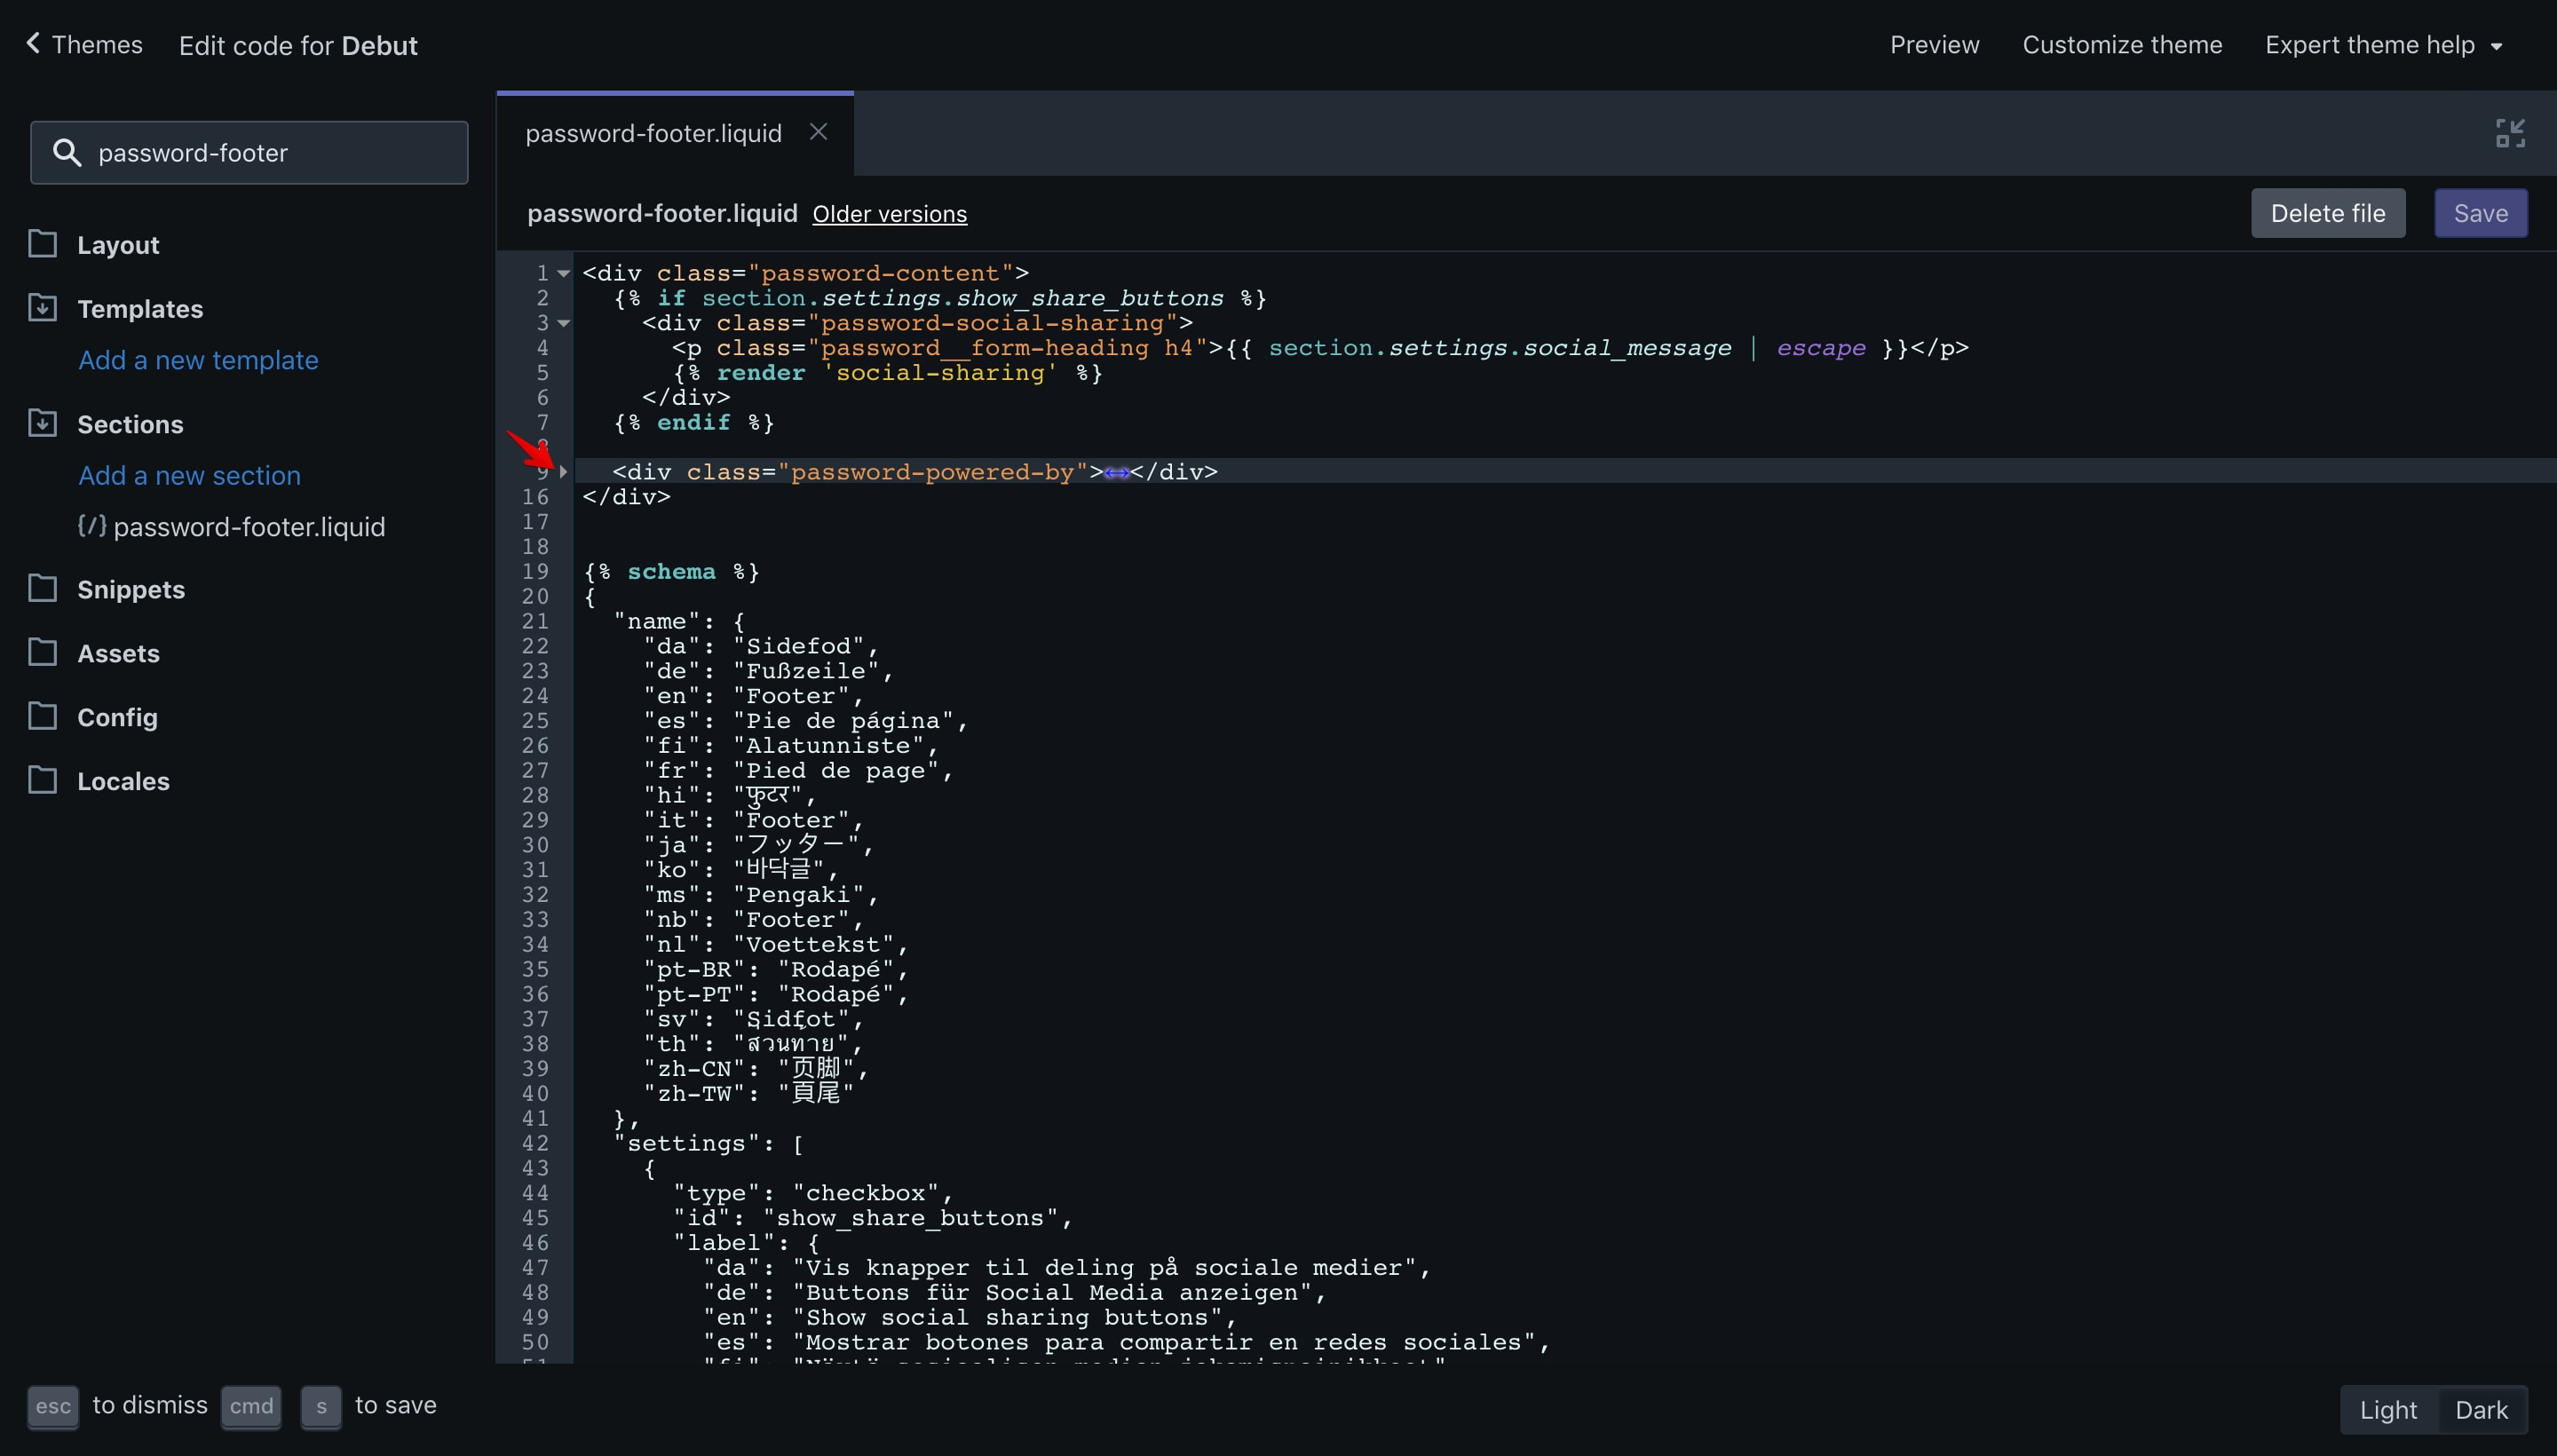 Debut theme copyright code selection in the code editor.